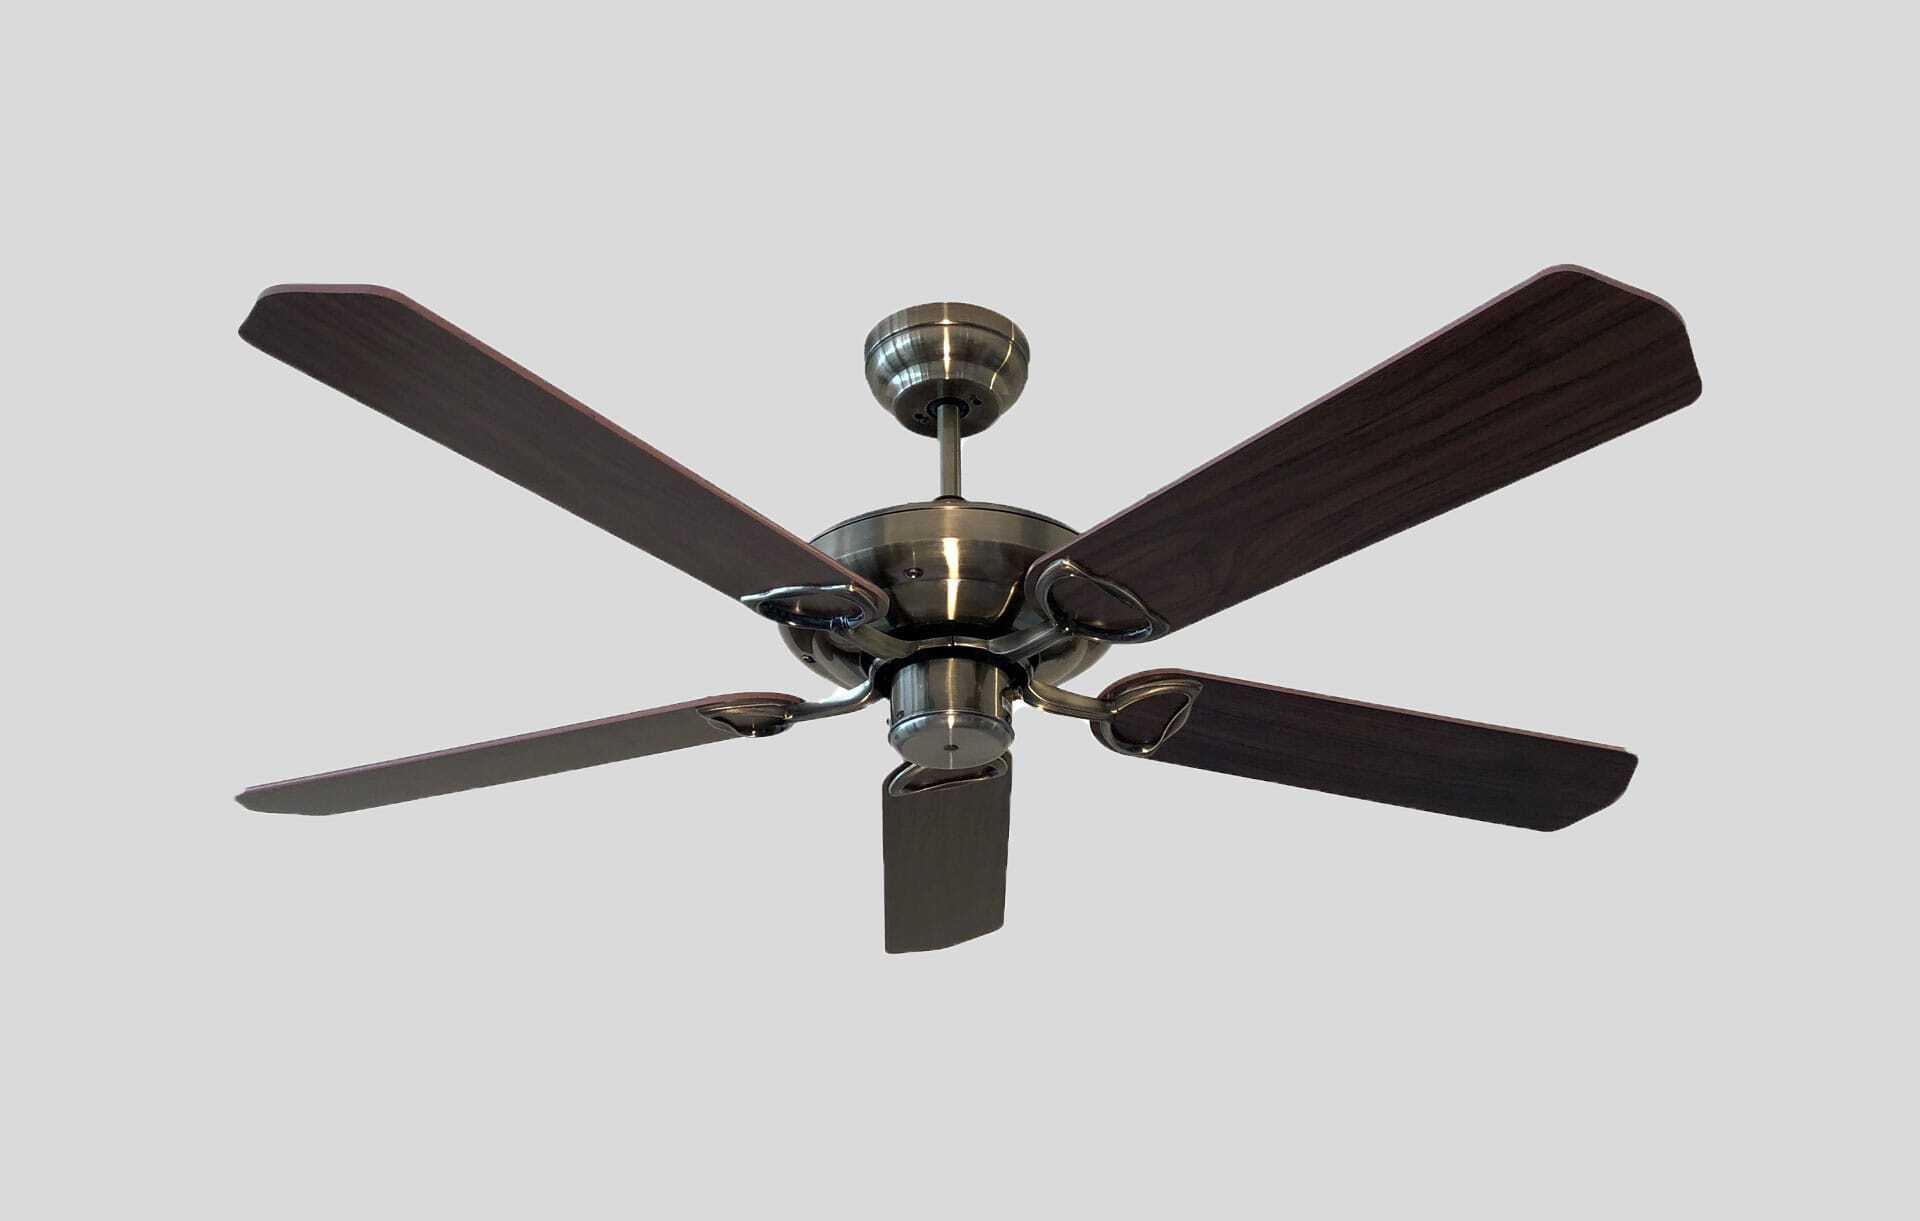 Alsanfan – Profan Retro Ceiling Fan